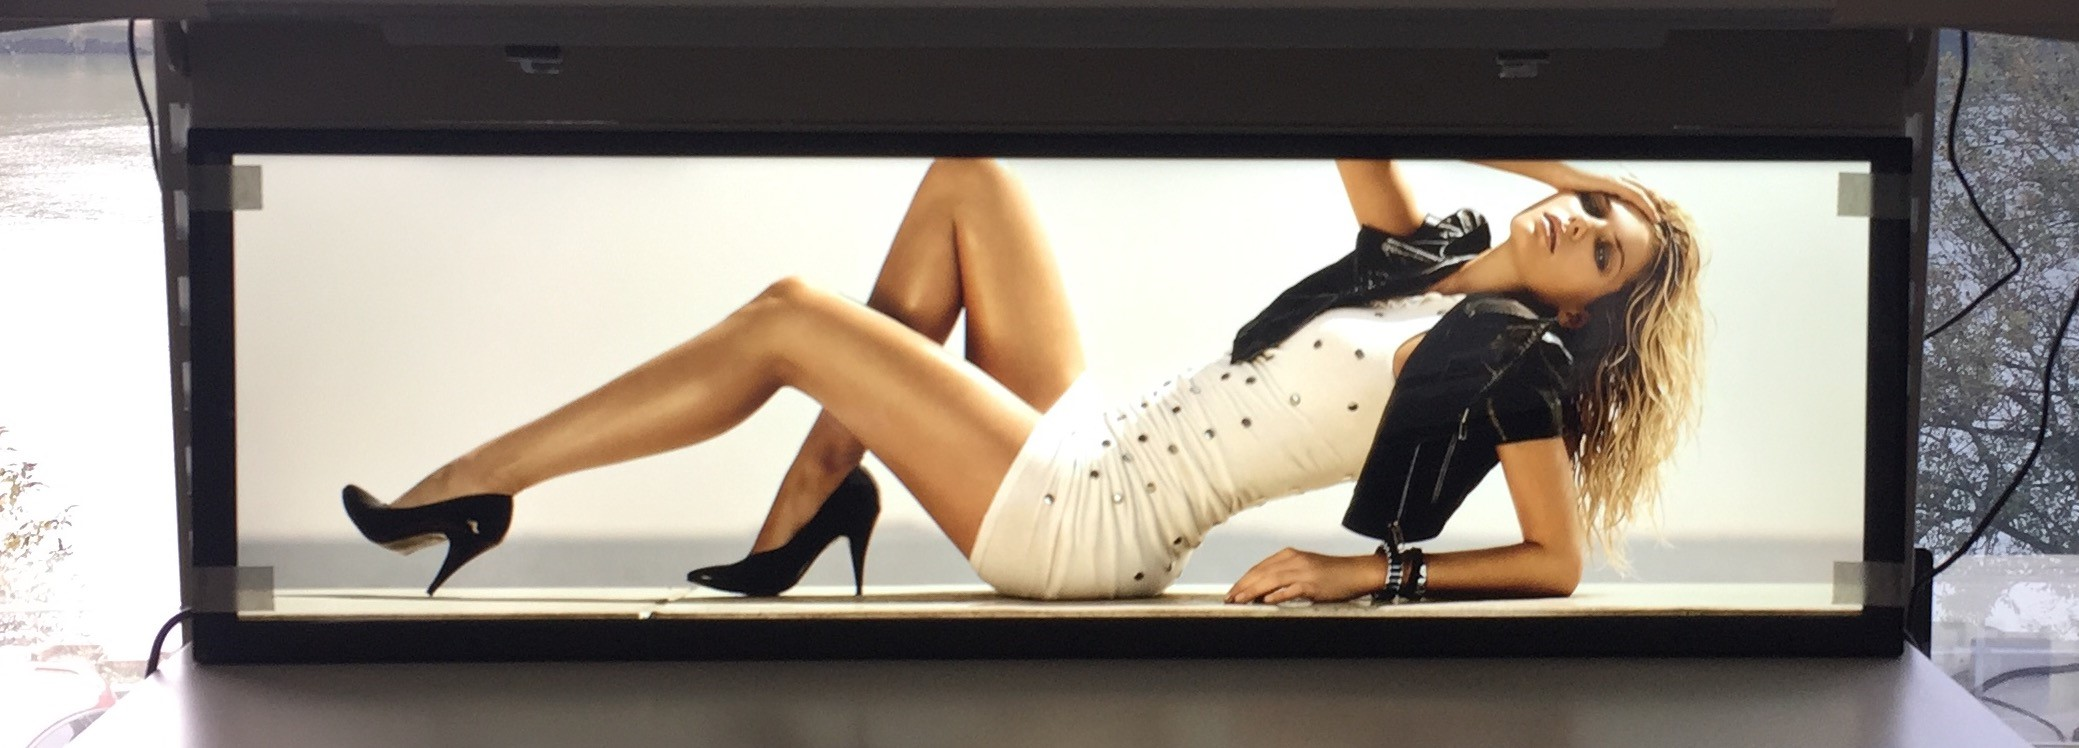 New Enhanced Range of Ultra Wide Bar Type Stretched Displays